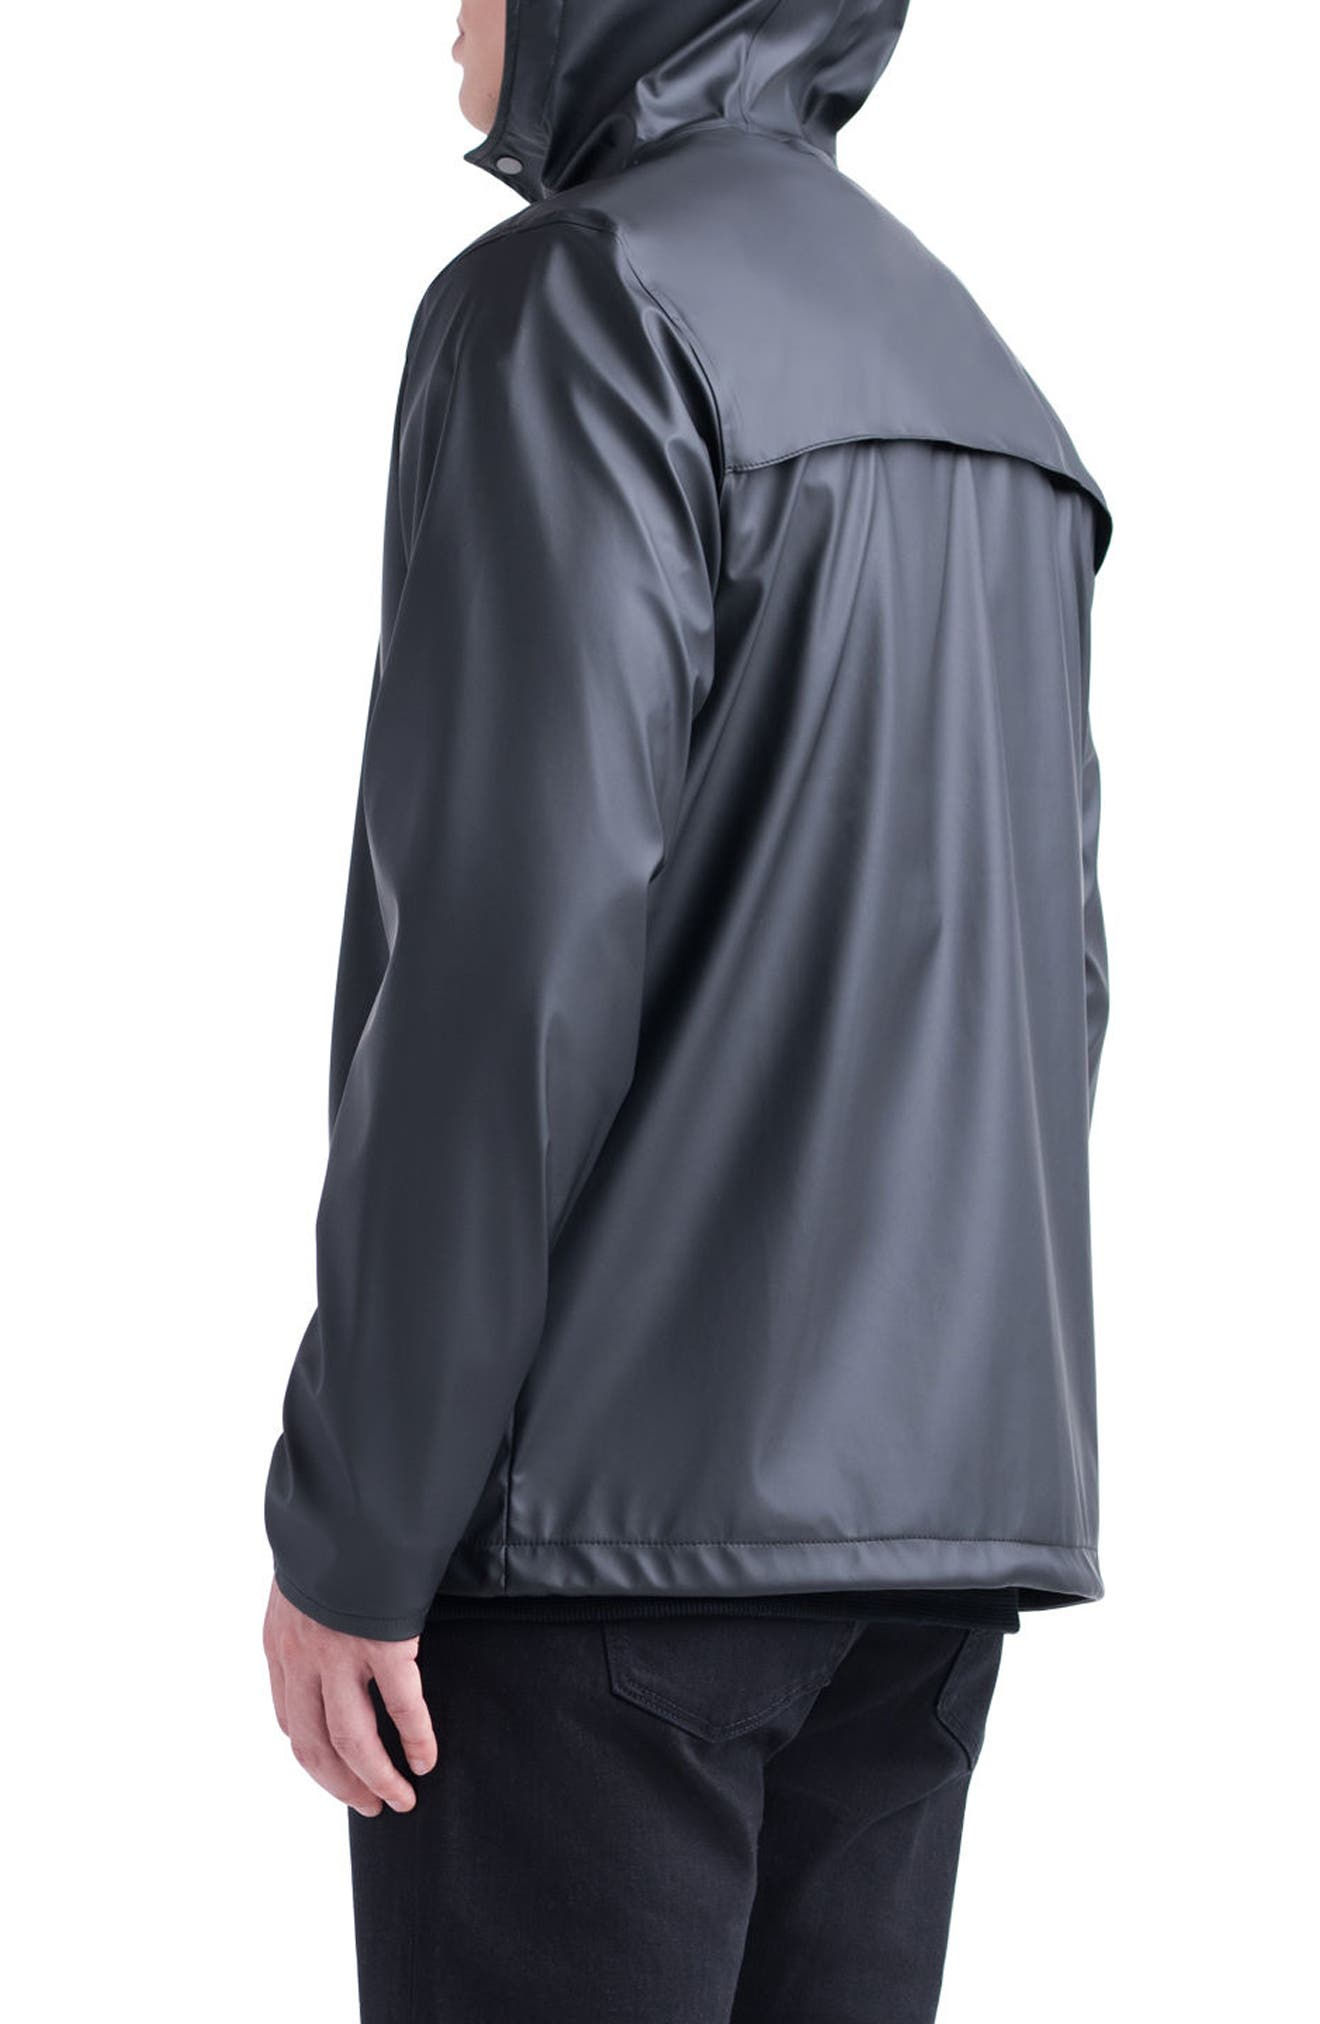 Forecast Hooded Coaches Jacket,                             Alternate thumbnail 4, color,                             002